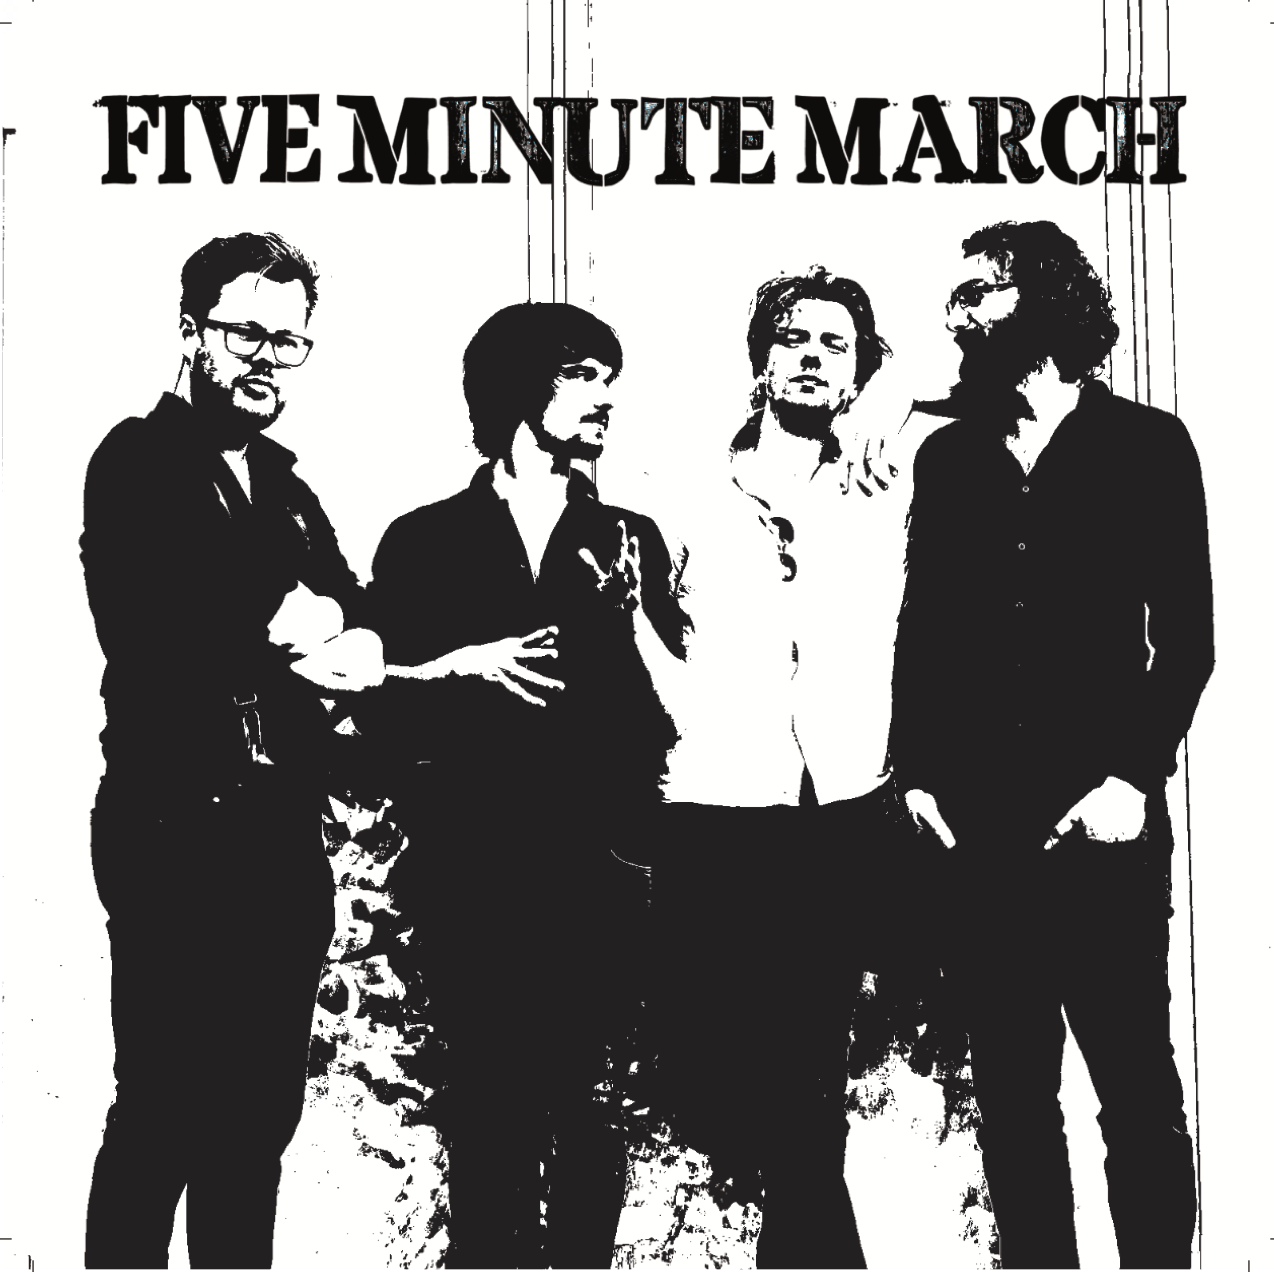 Five Minute March